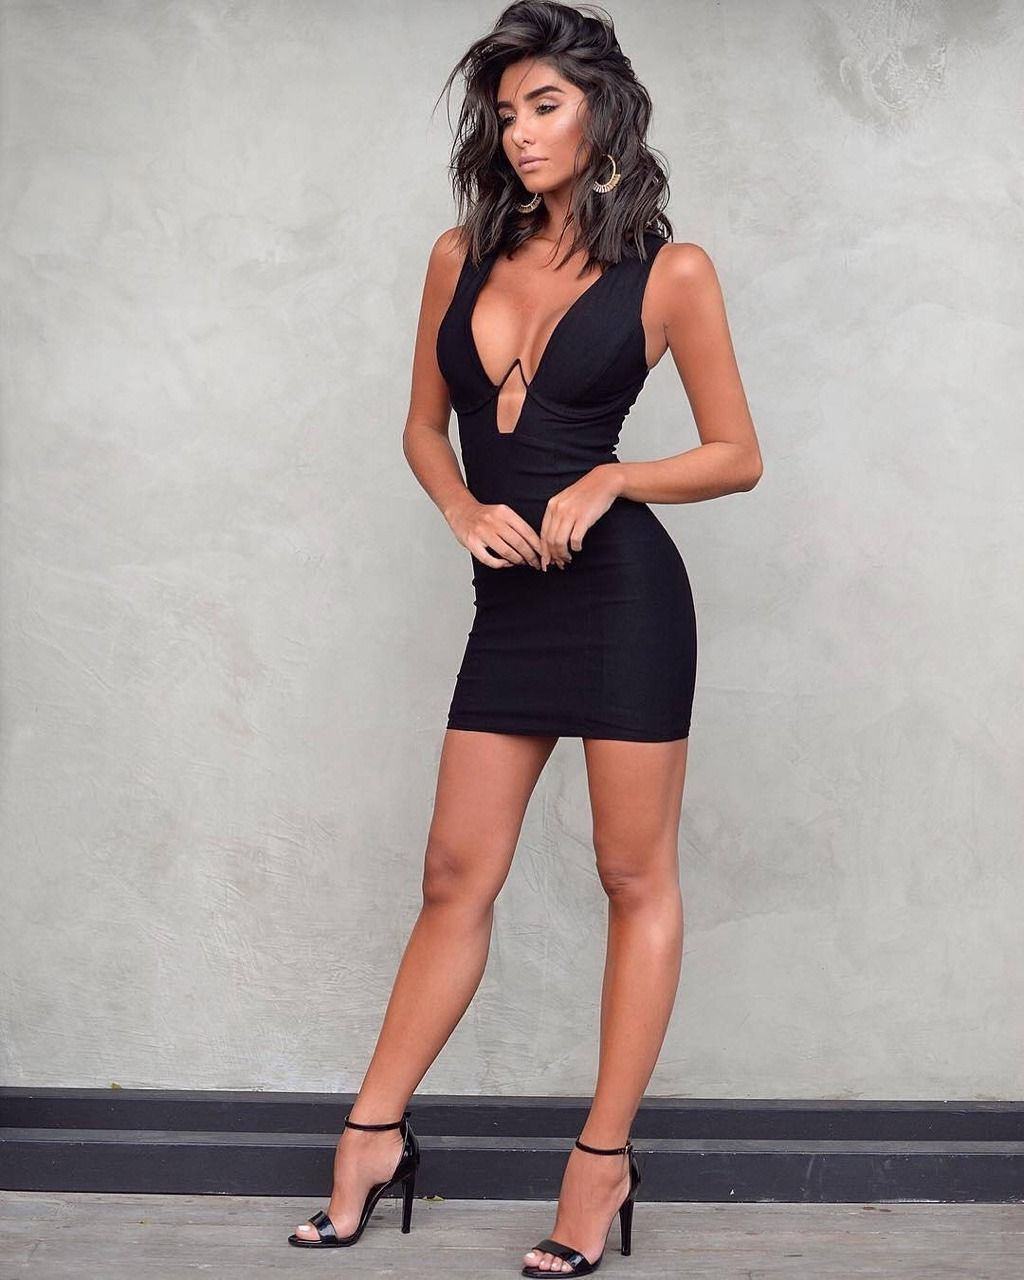 Pin by serge on crazy hot dresses in pinterest dresses hot